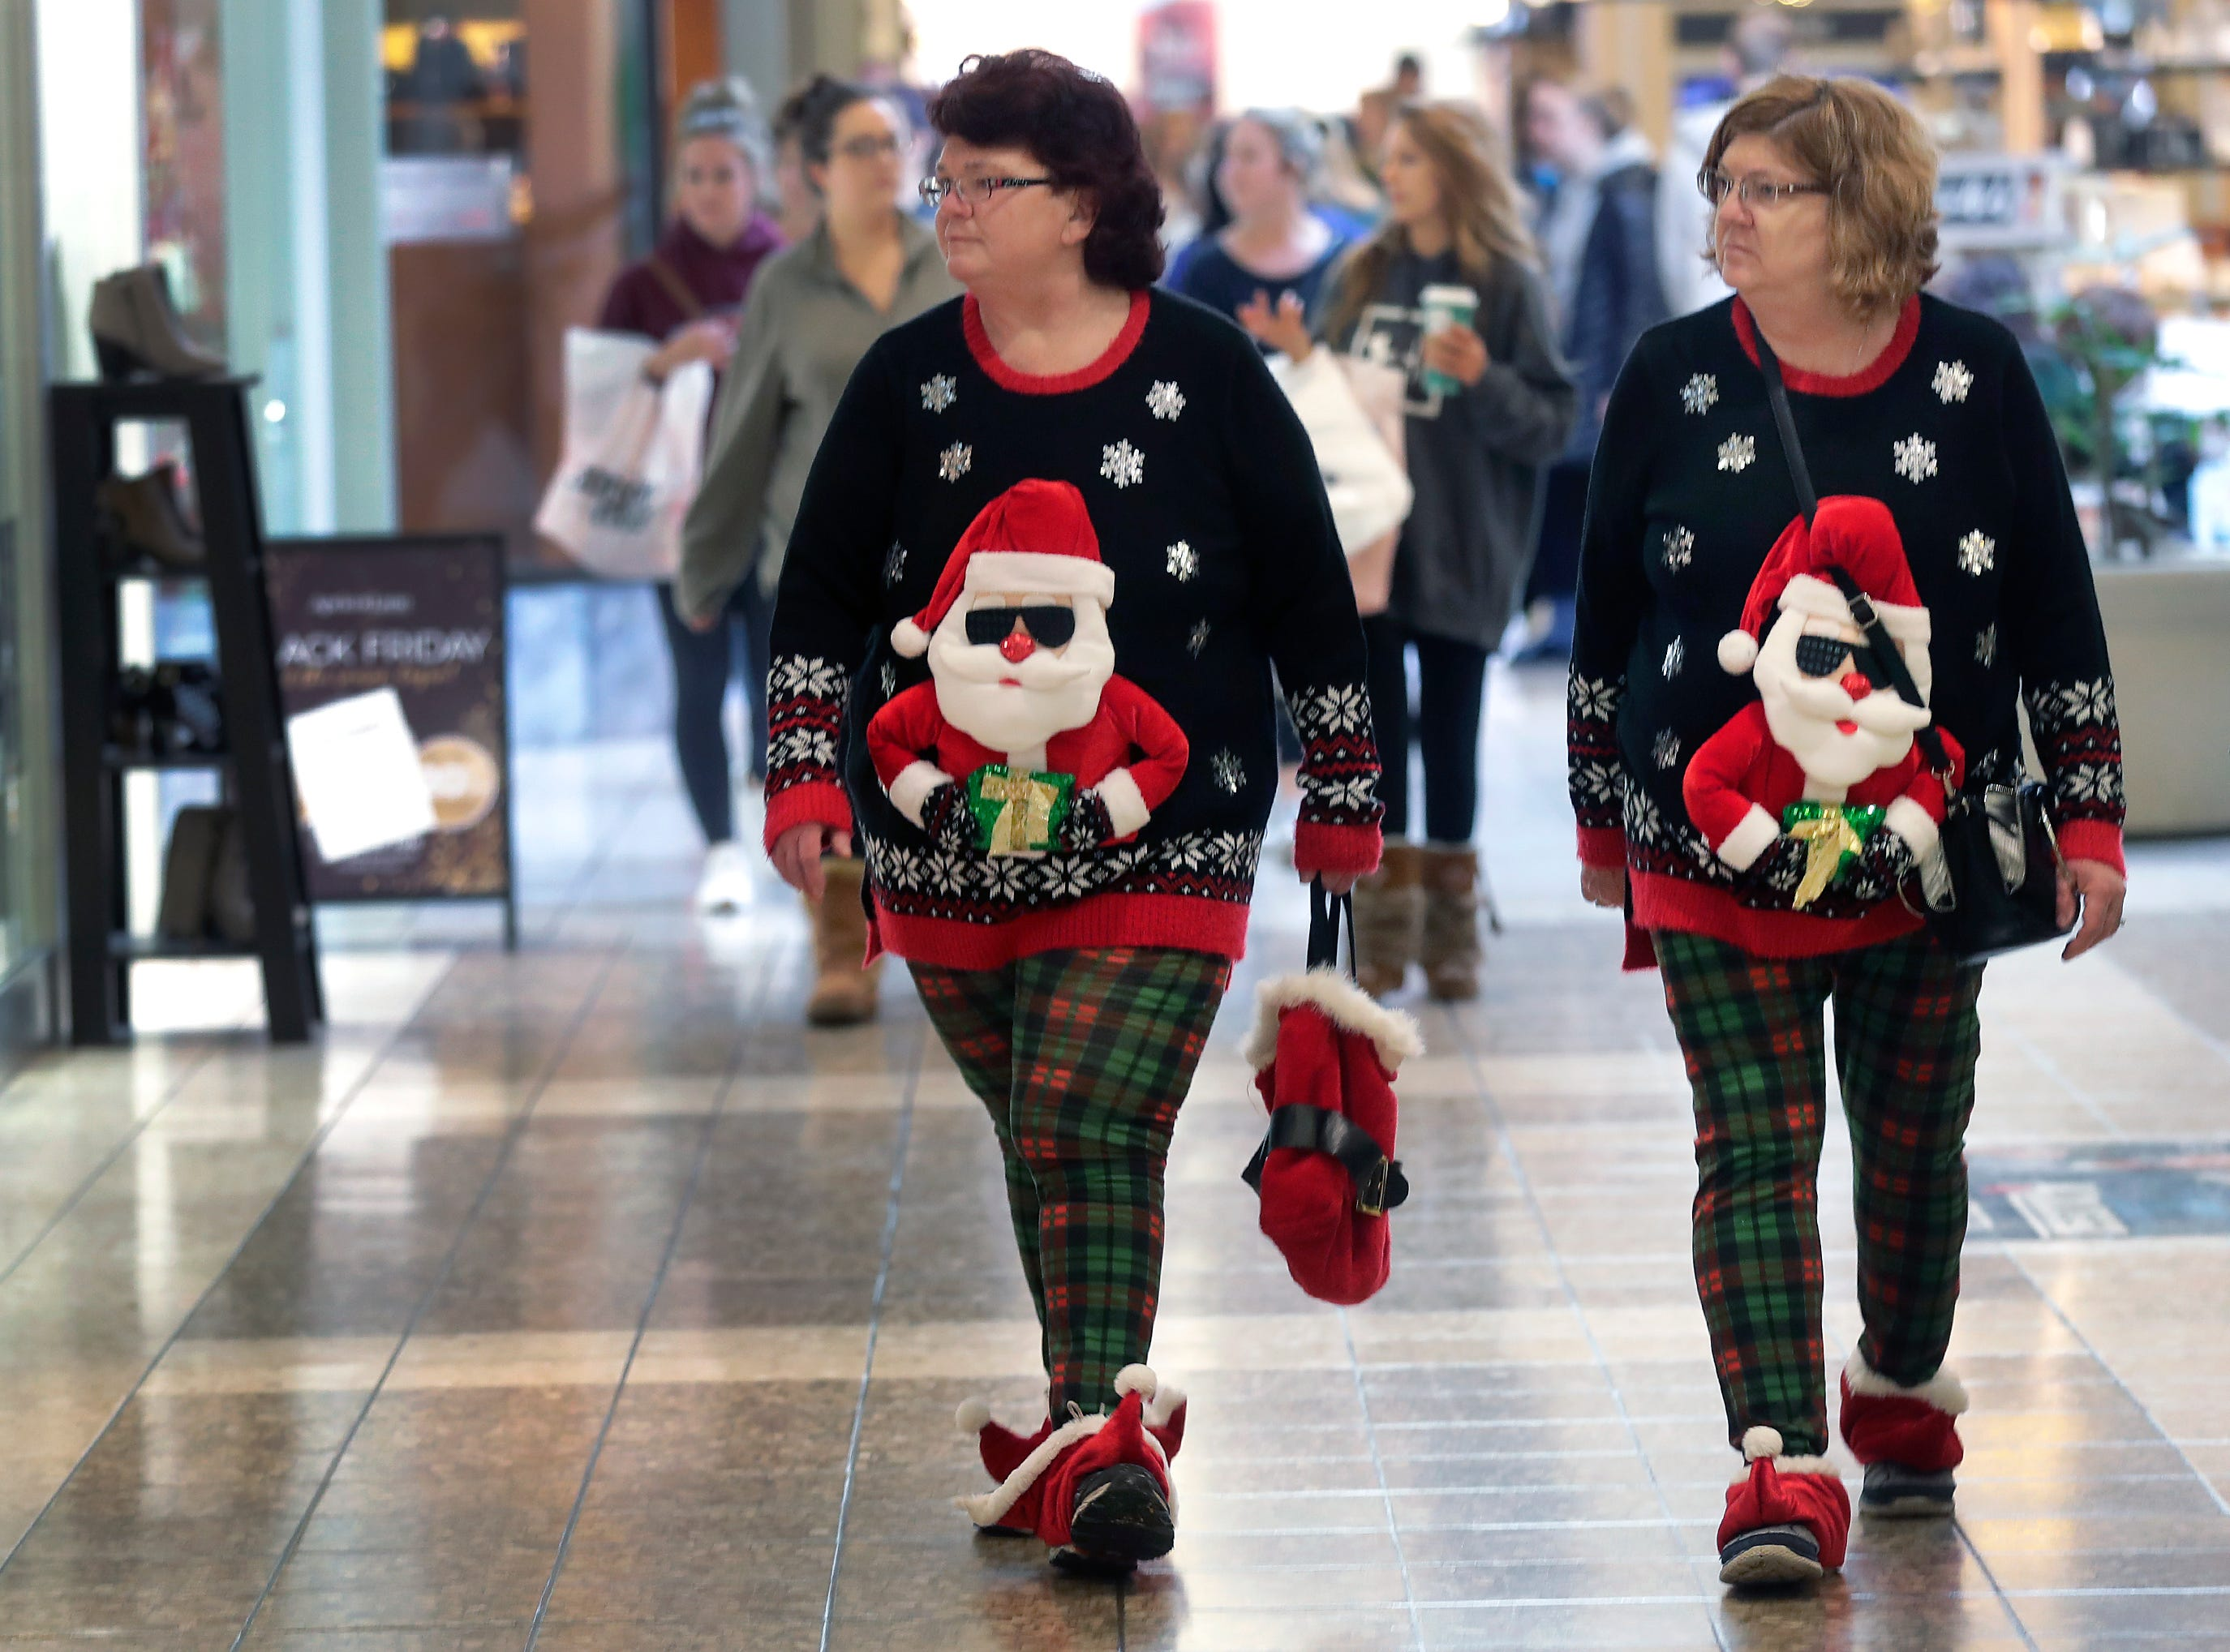 Teresa Black, left, and Alice Keel are dressed for the hoildays while shopping on Black Friday  at the Fox River Mall on Friday, Nov. 23, 2018 in Grand Chute, Wis